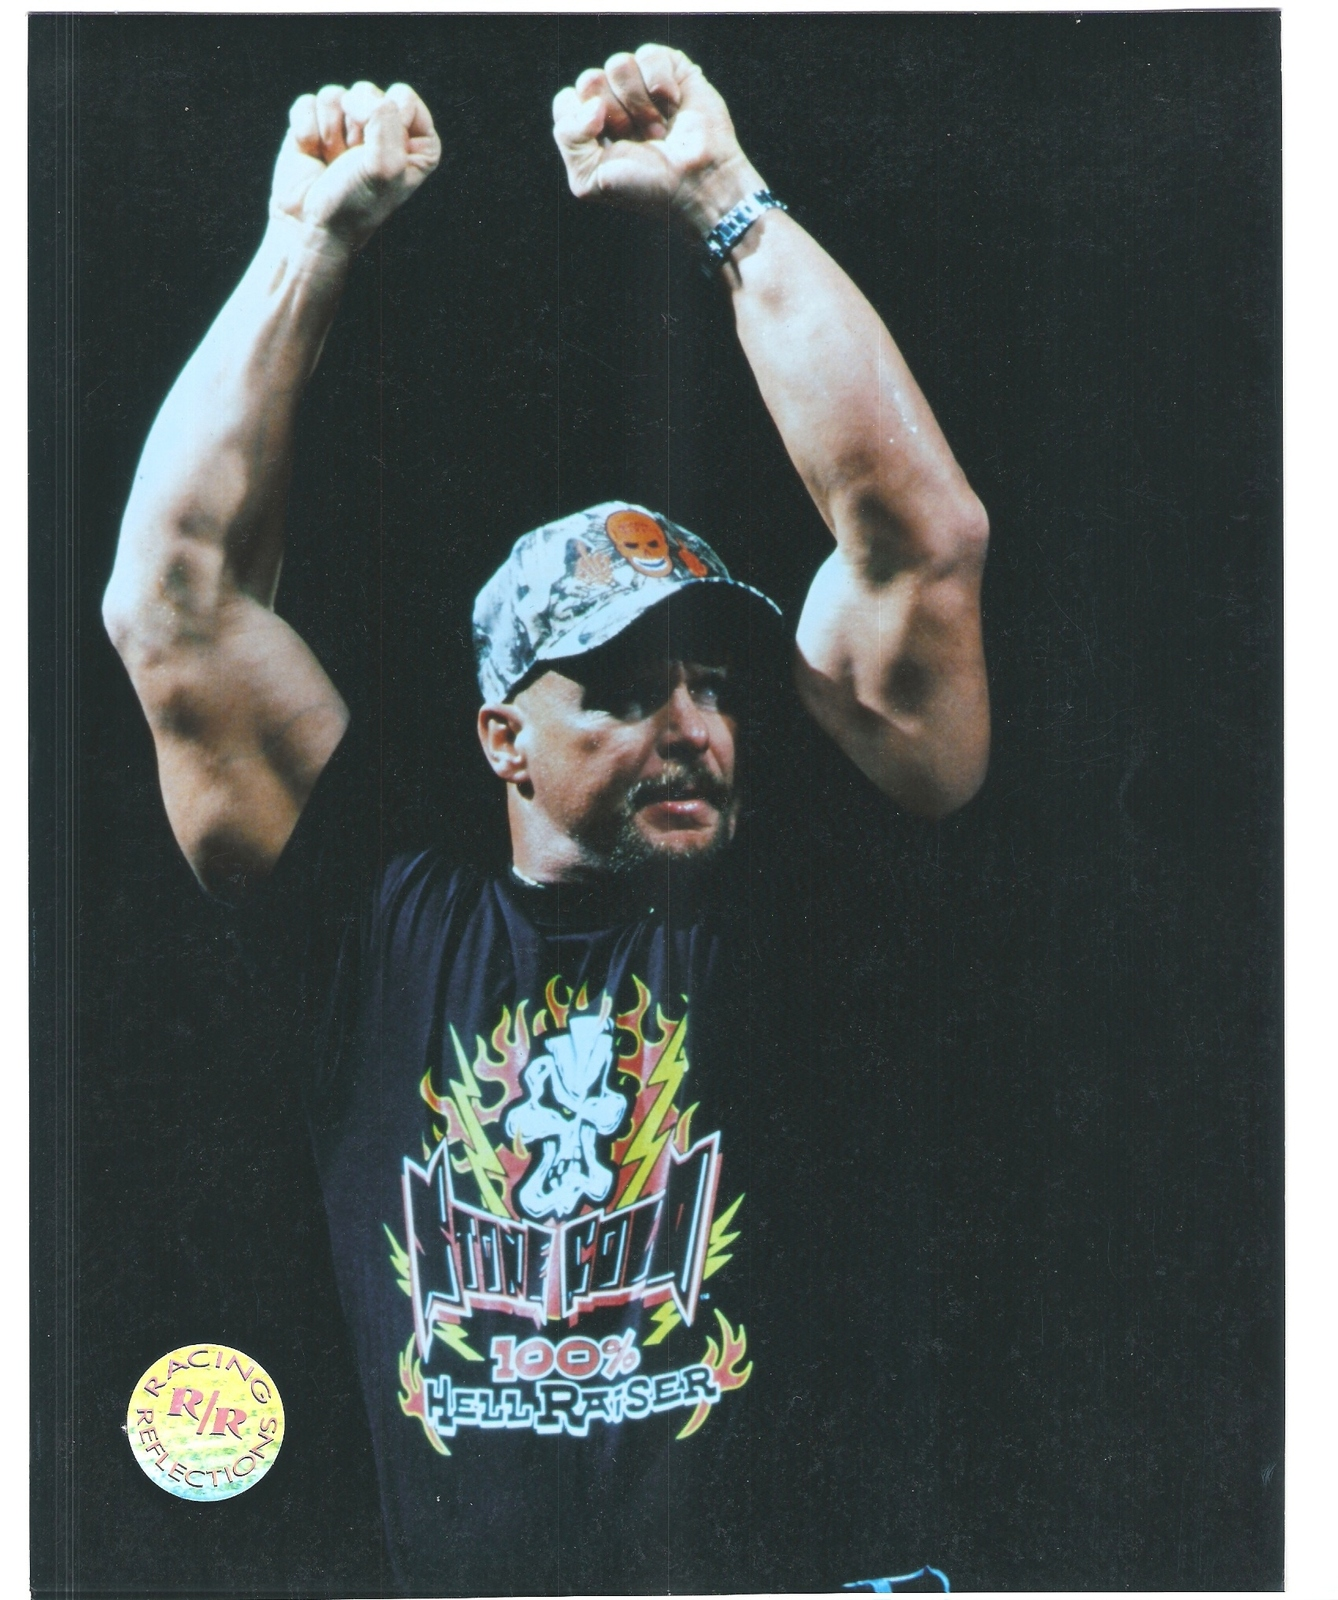 Primary image for Steve Austin RR RH RR Vintage 8X10 Color Wrestling Memorabilia Photo